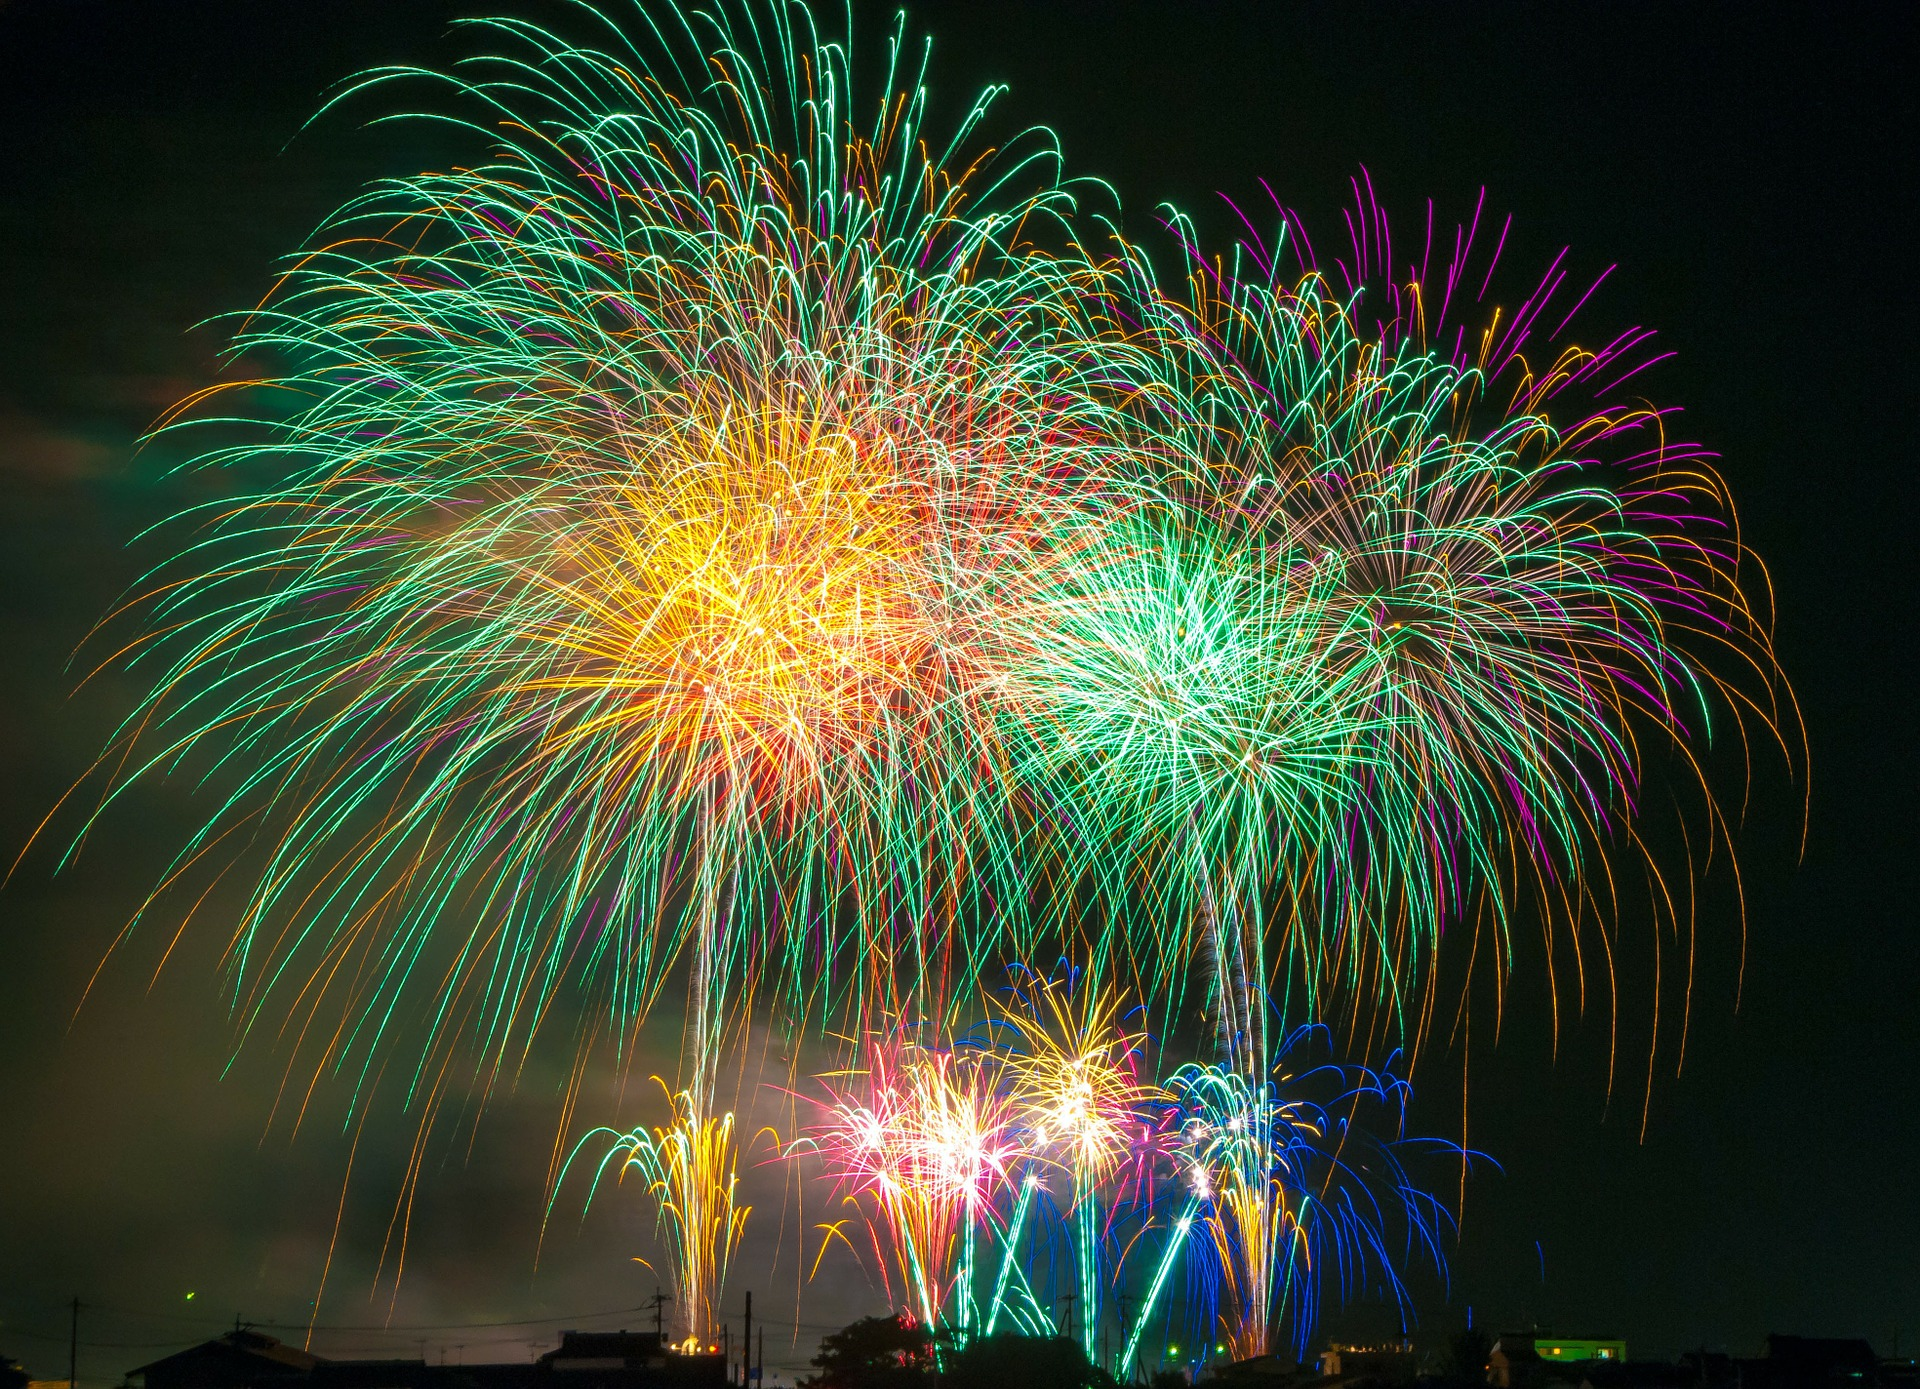 Best Spots to Watch Fireworks in Nevada